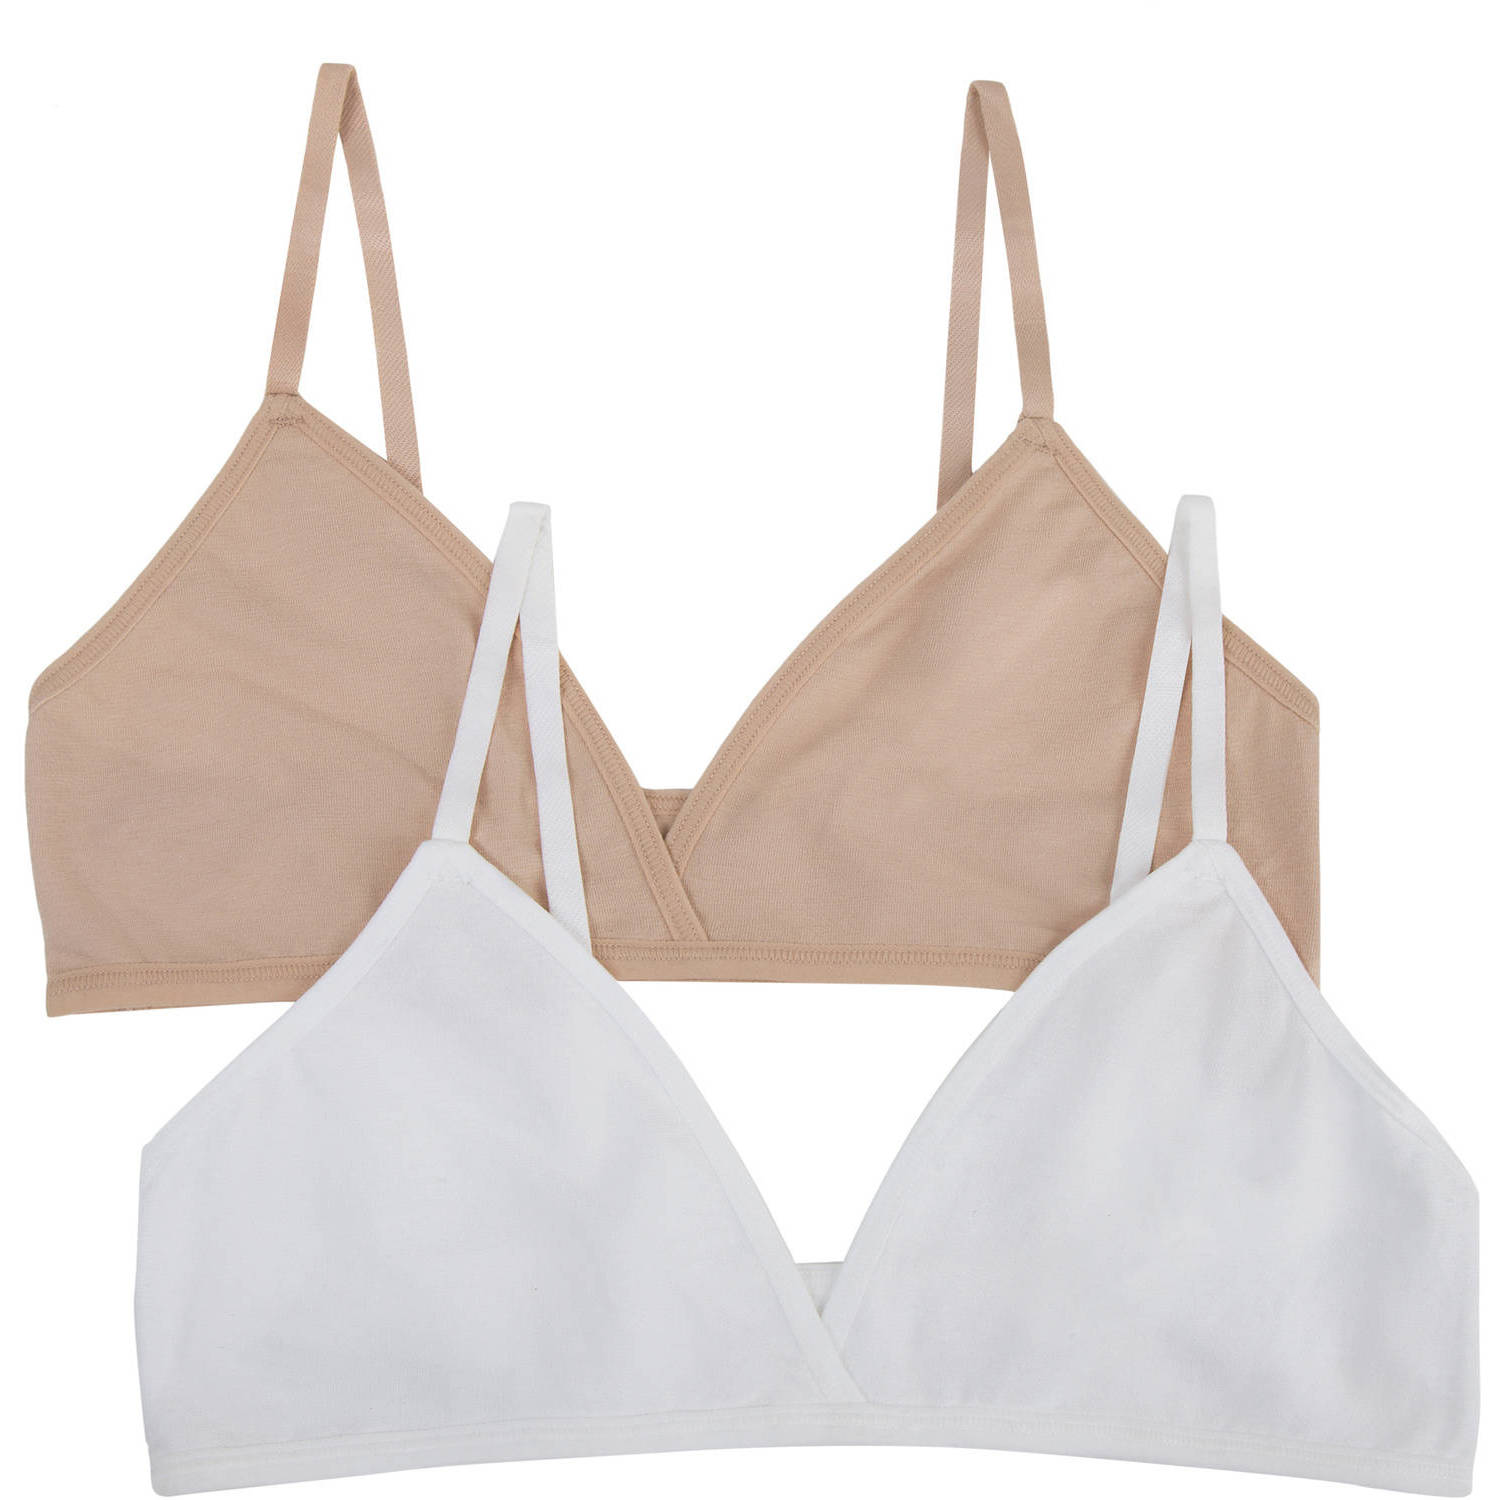 Fruit of the Loom Girls Cotton Bralette, 2 Pack (Little Girls & Big Girls)